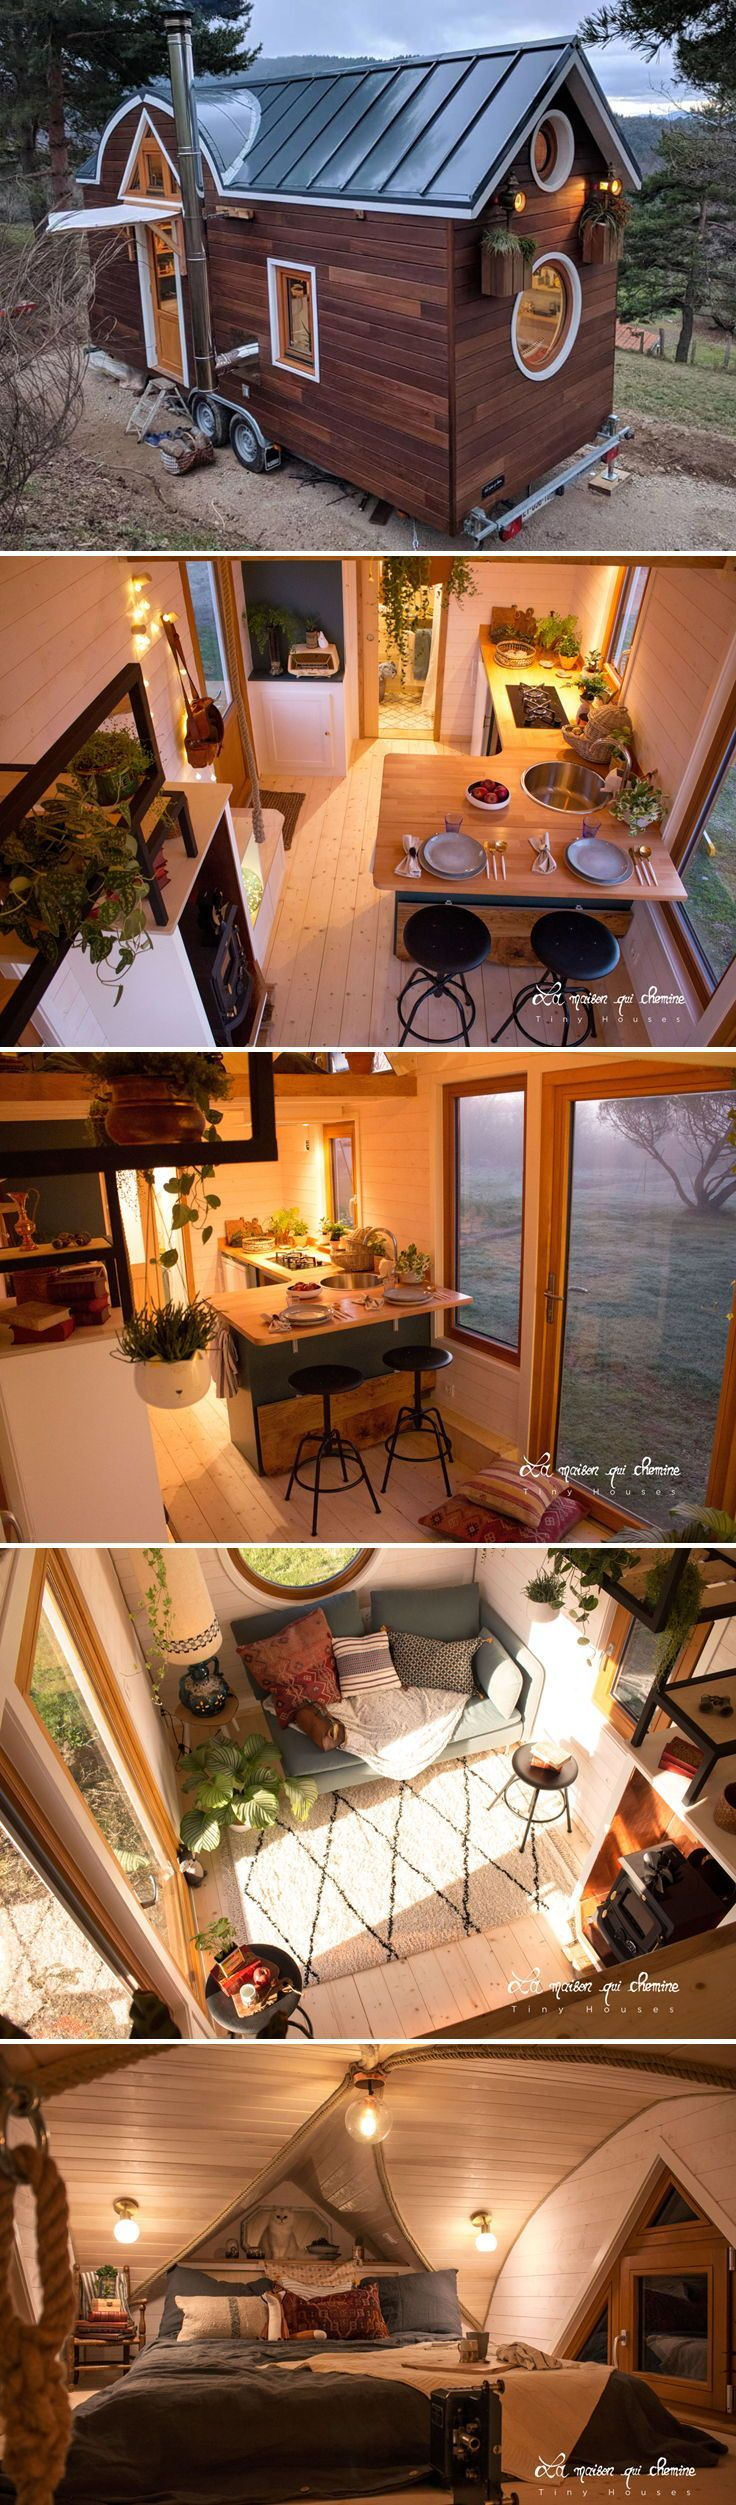 Flore is a beautiful 6-meter (~20-foot) tiny house built by French tiny home bui…